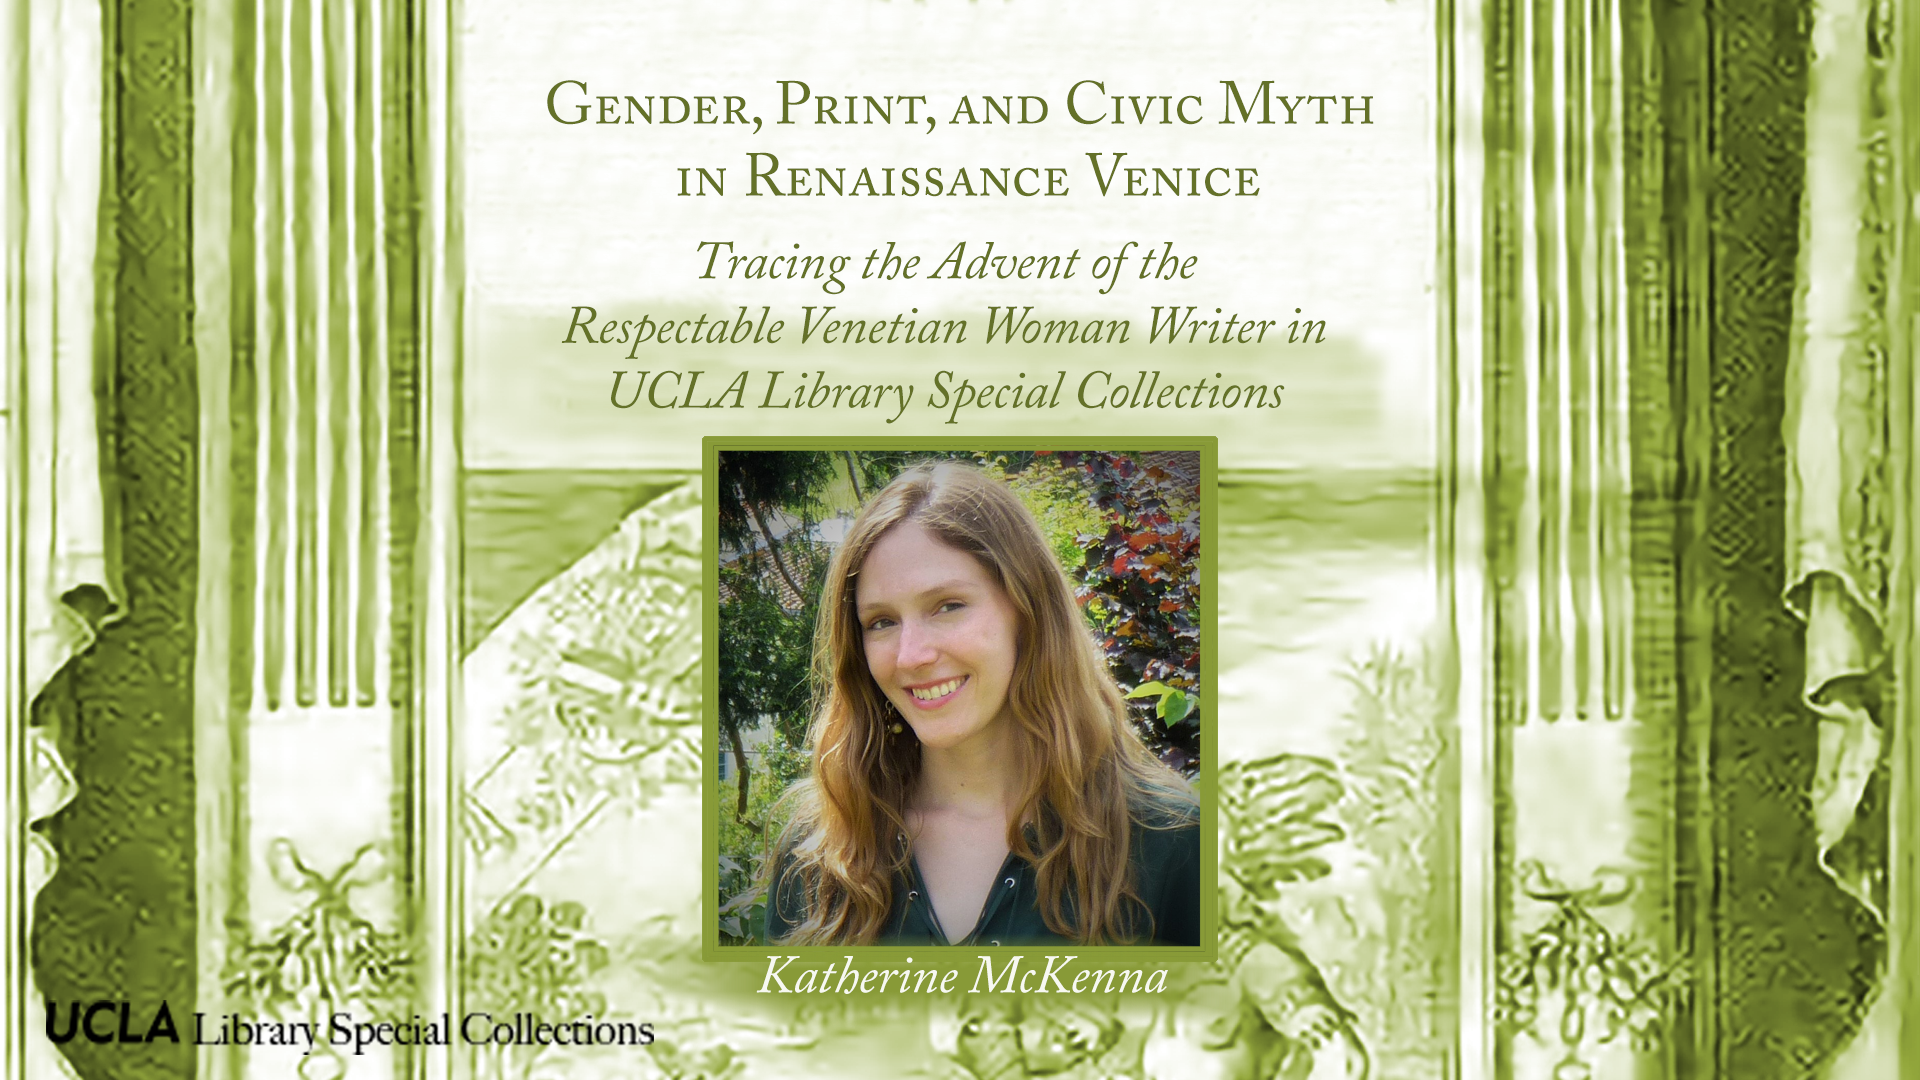 Katherine McKenna: Gender, Print, and Civic Myth in Renaissance Venice